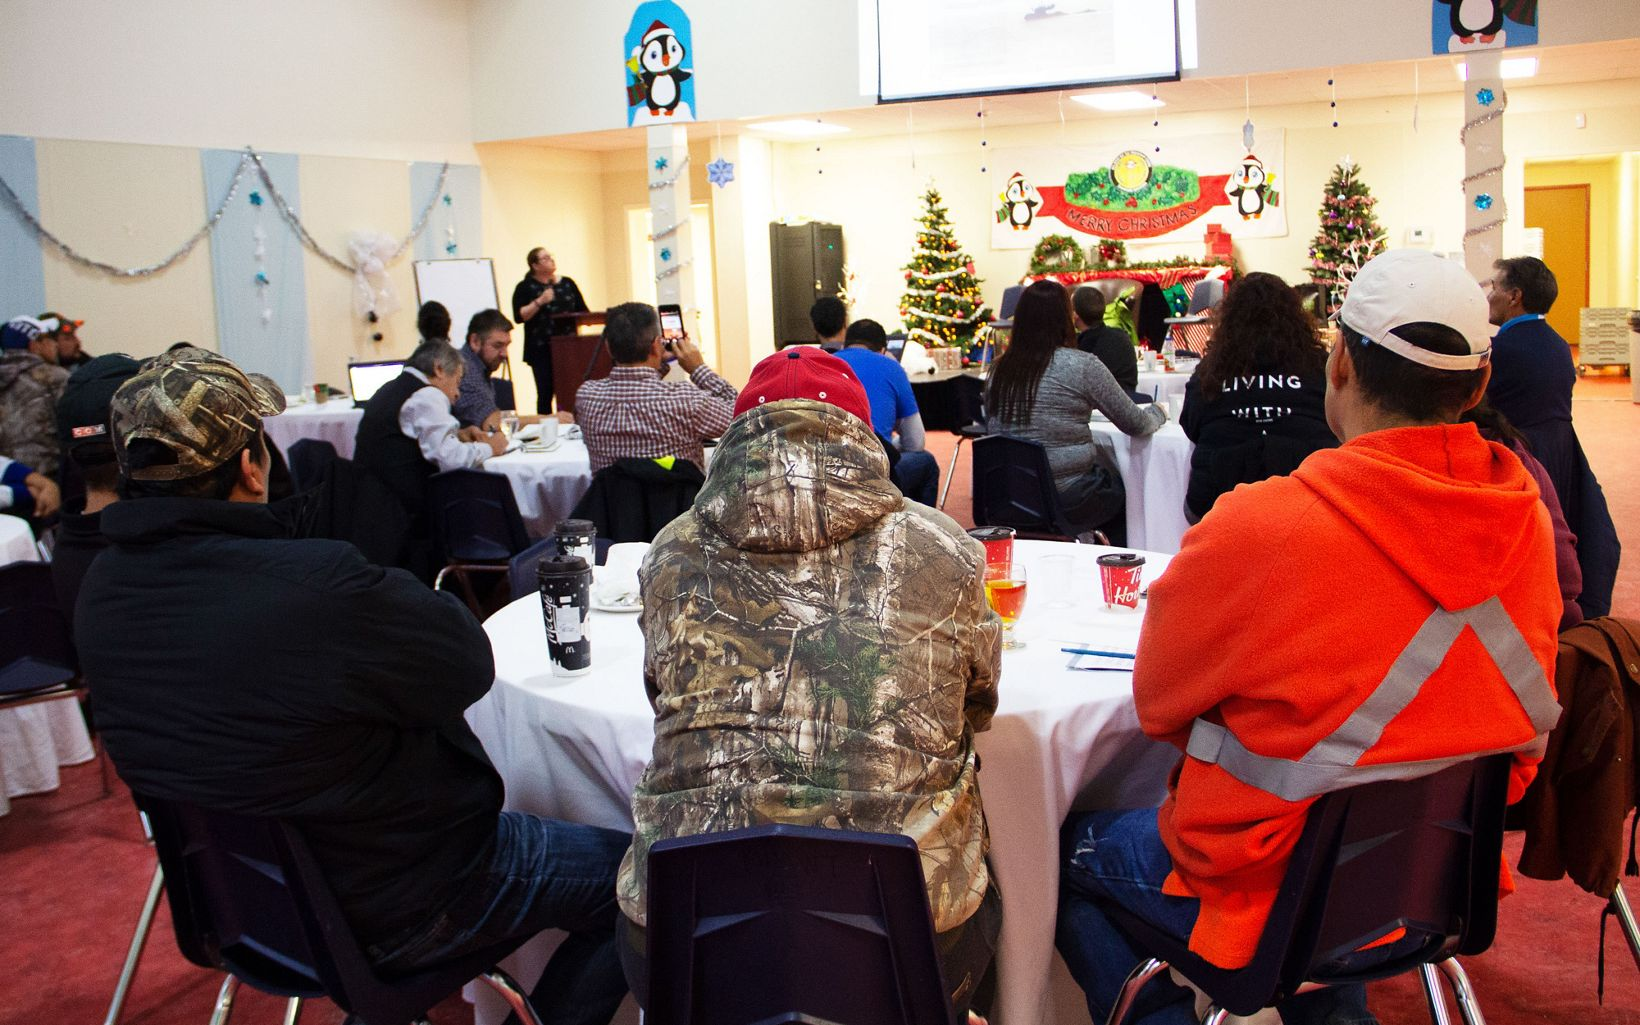 A gathering of First Nations at the northern Manitoba moose workshop organized by Nature United and partners.